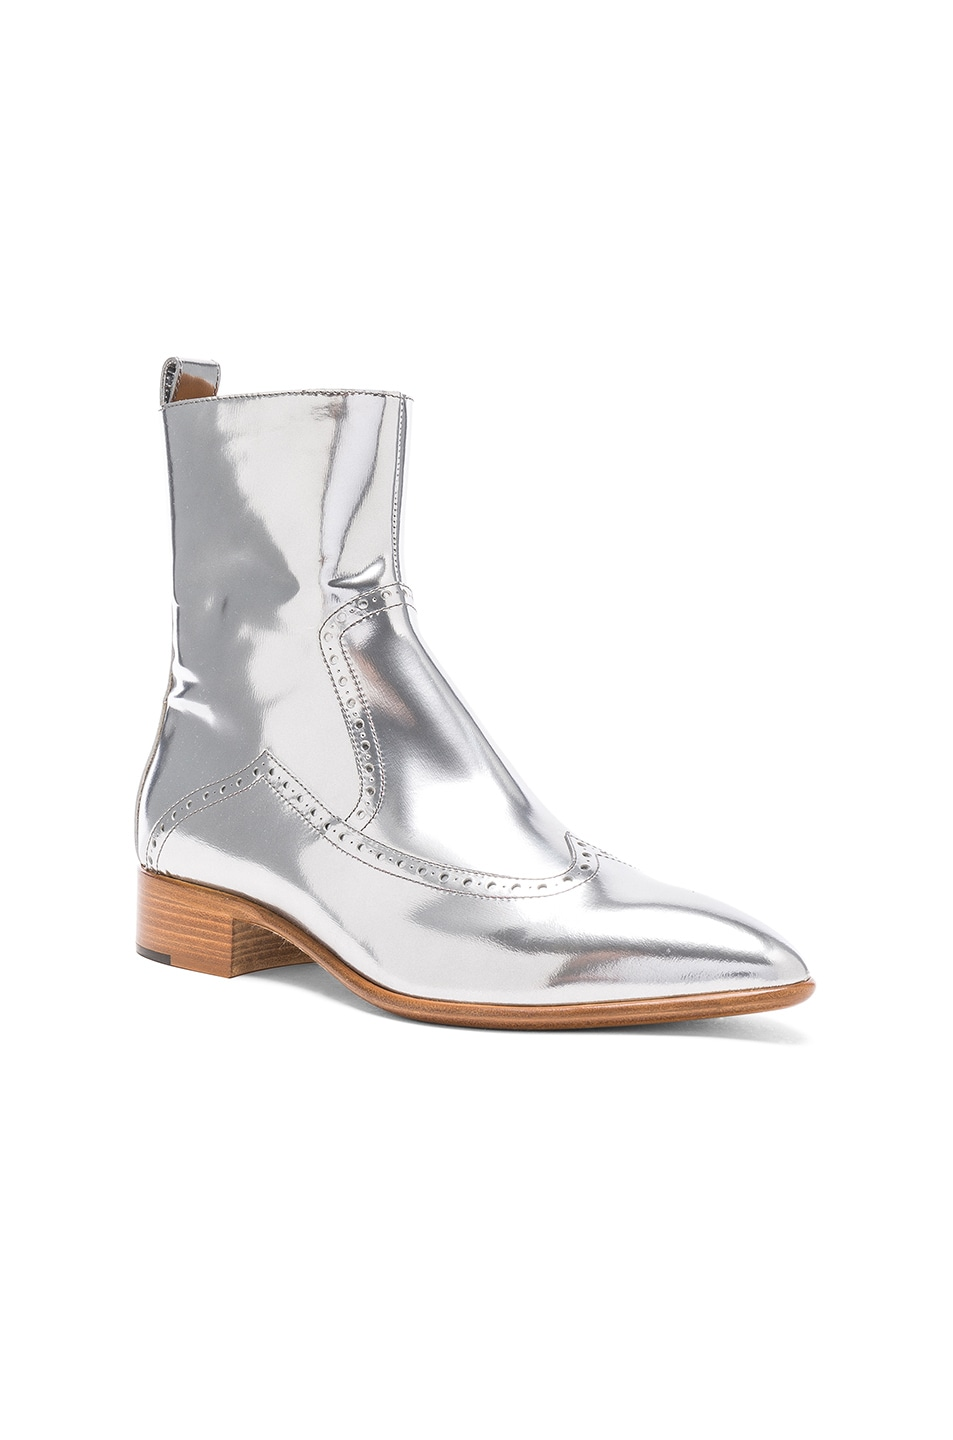 Image 2 of Maison Margiela Leather Ankle Boots in Silver